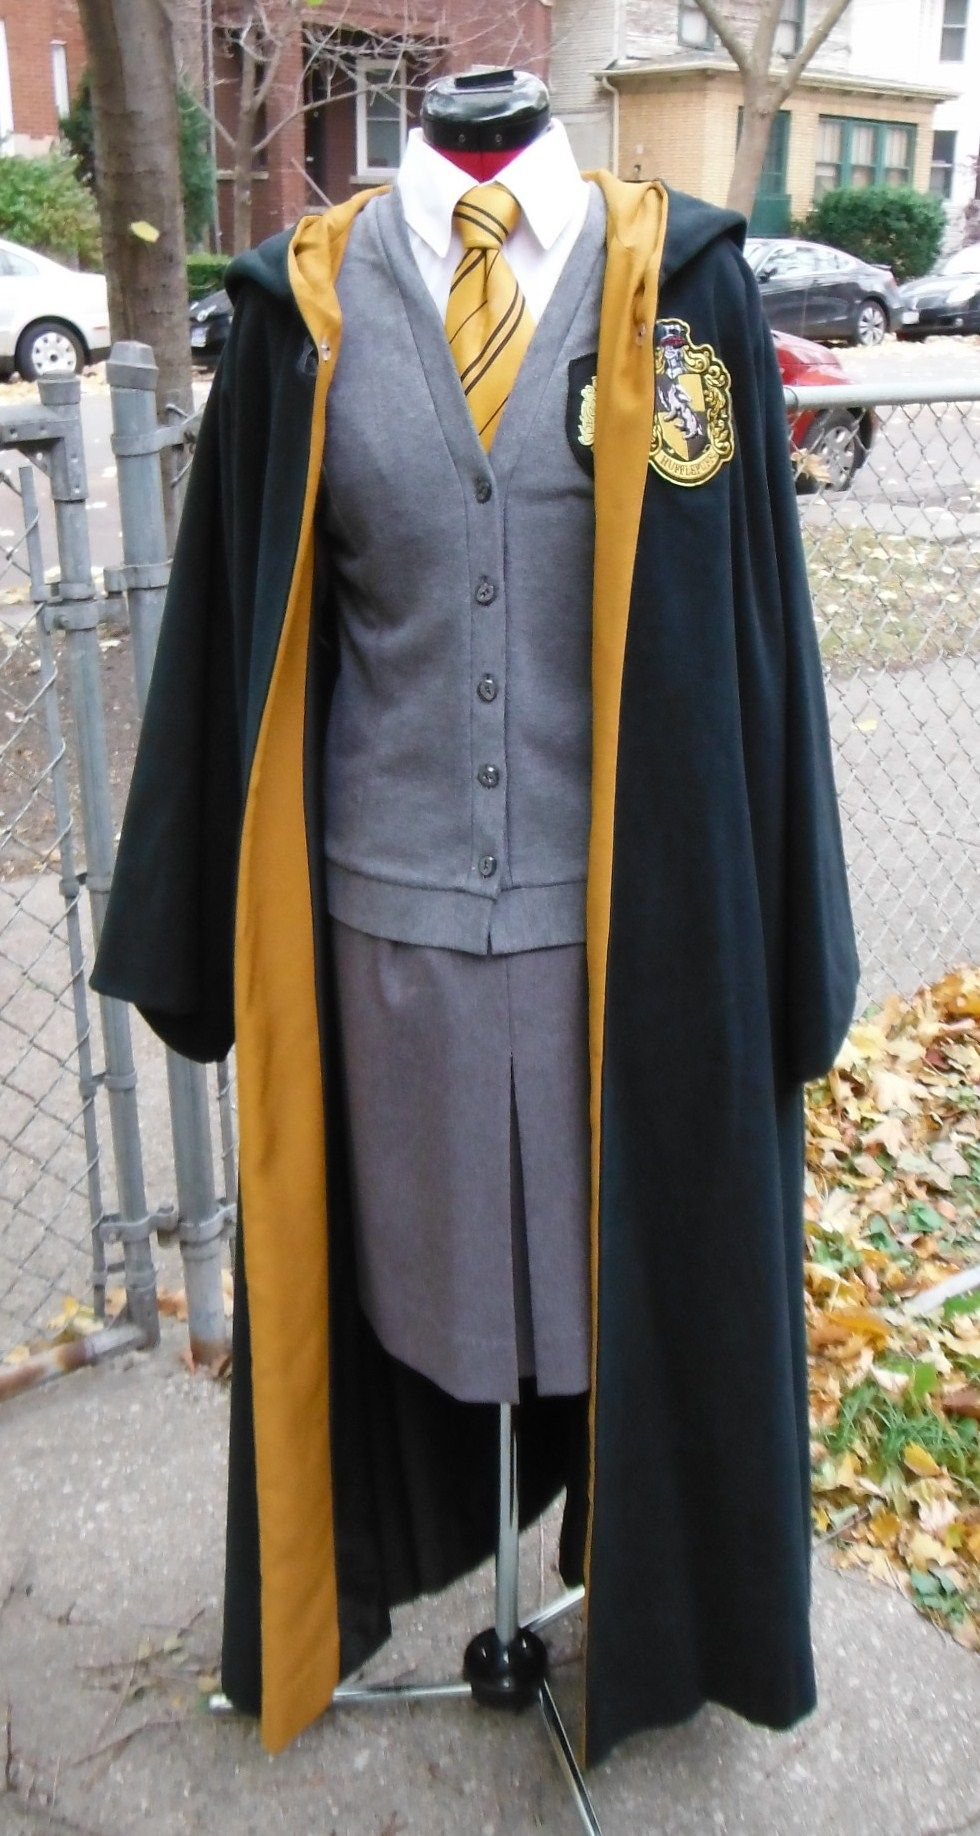 Quidditch | Costume ideas | Pinterest | Harry potter and Hogwarts